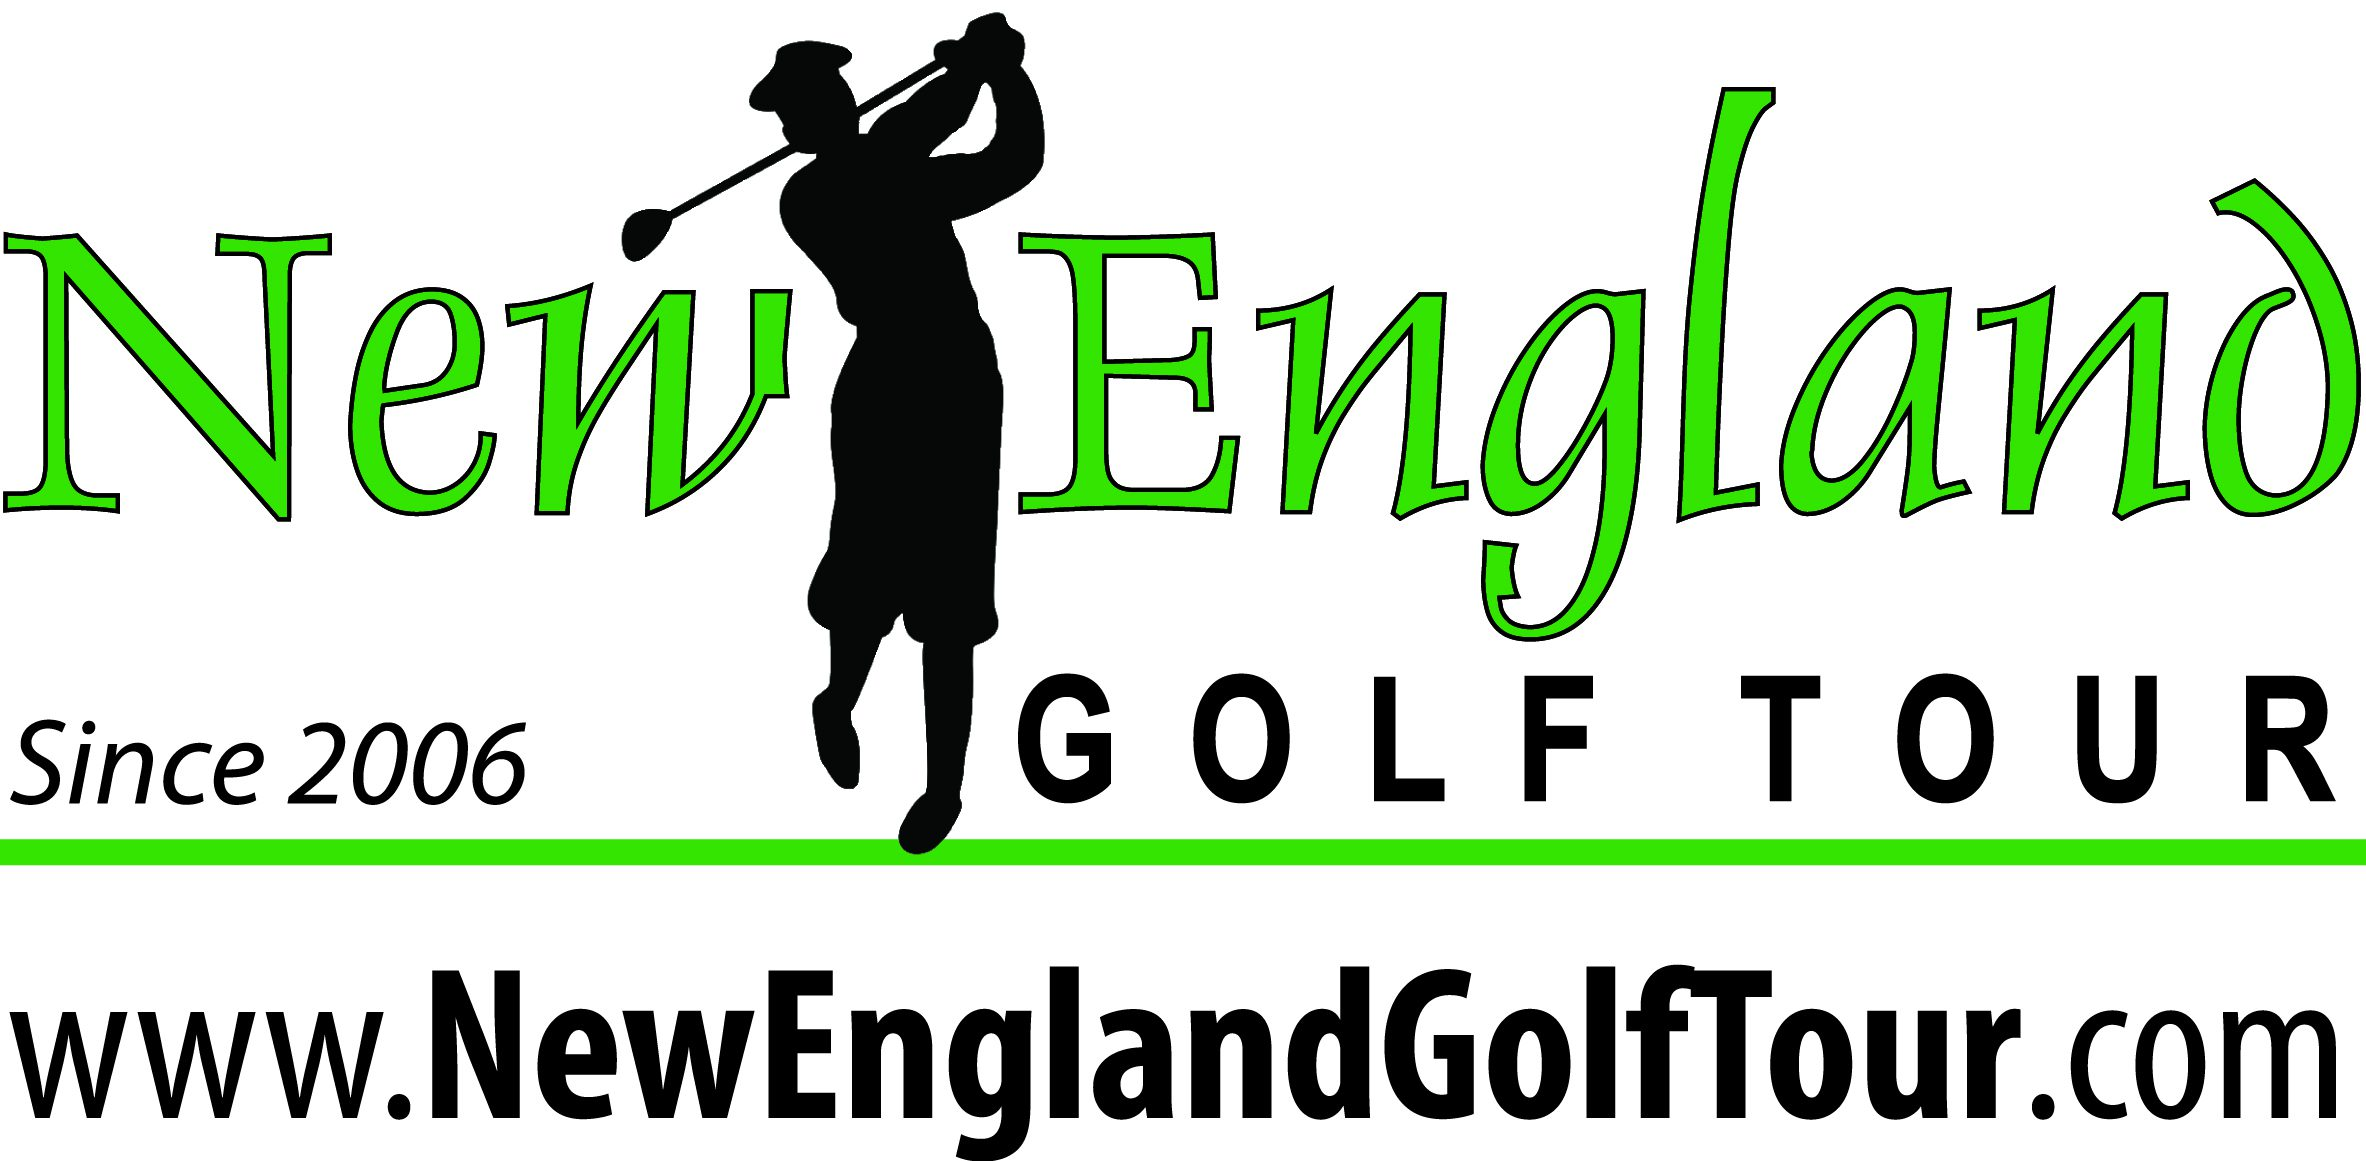 New England Golf Tour